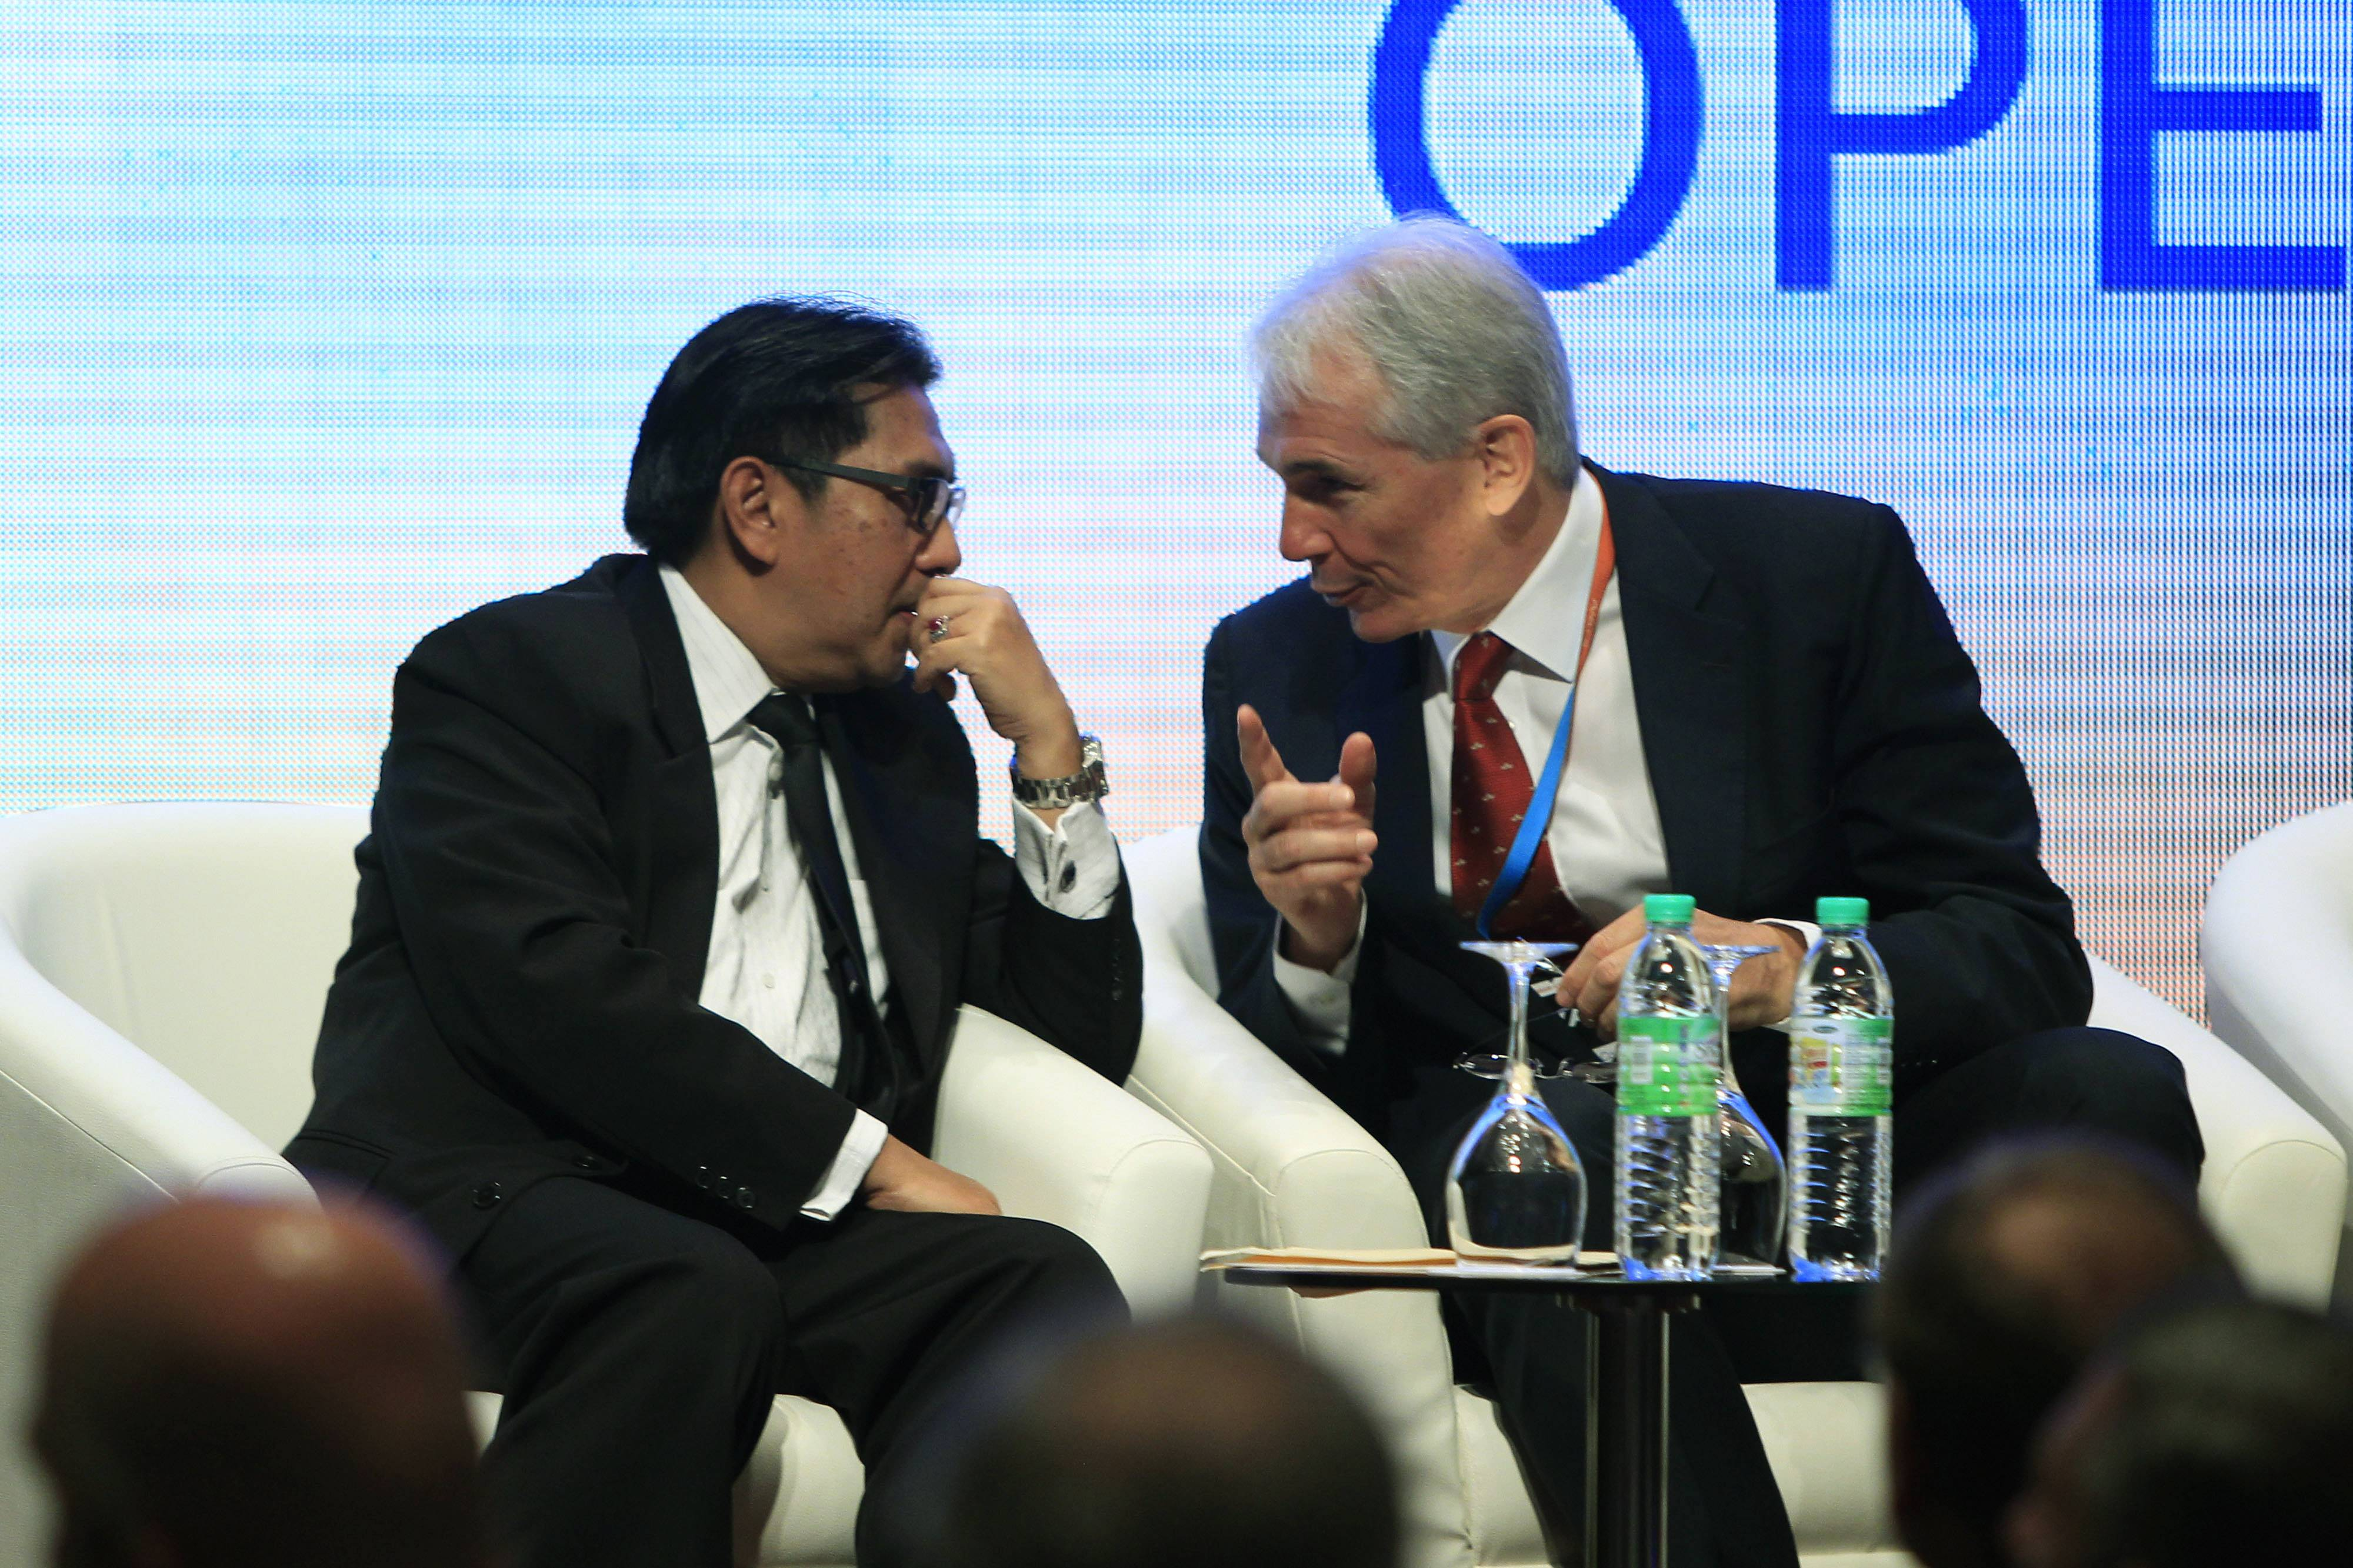 Chief Executive and Director General of the International Air Transport Association (IATA) Tony Tyler, right, talks to Malaysia's Department of Civil Aviation Director General Azharuddin Abdul Rahman during the IATA Ops Conference in Kuala Lumpur, Malaysia, Tuesday.